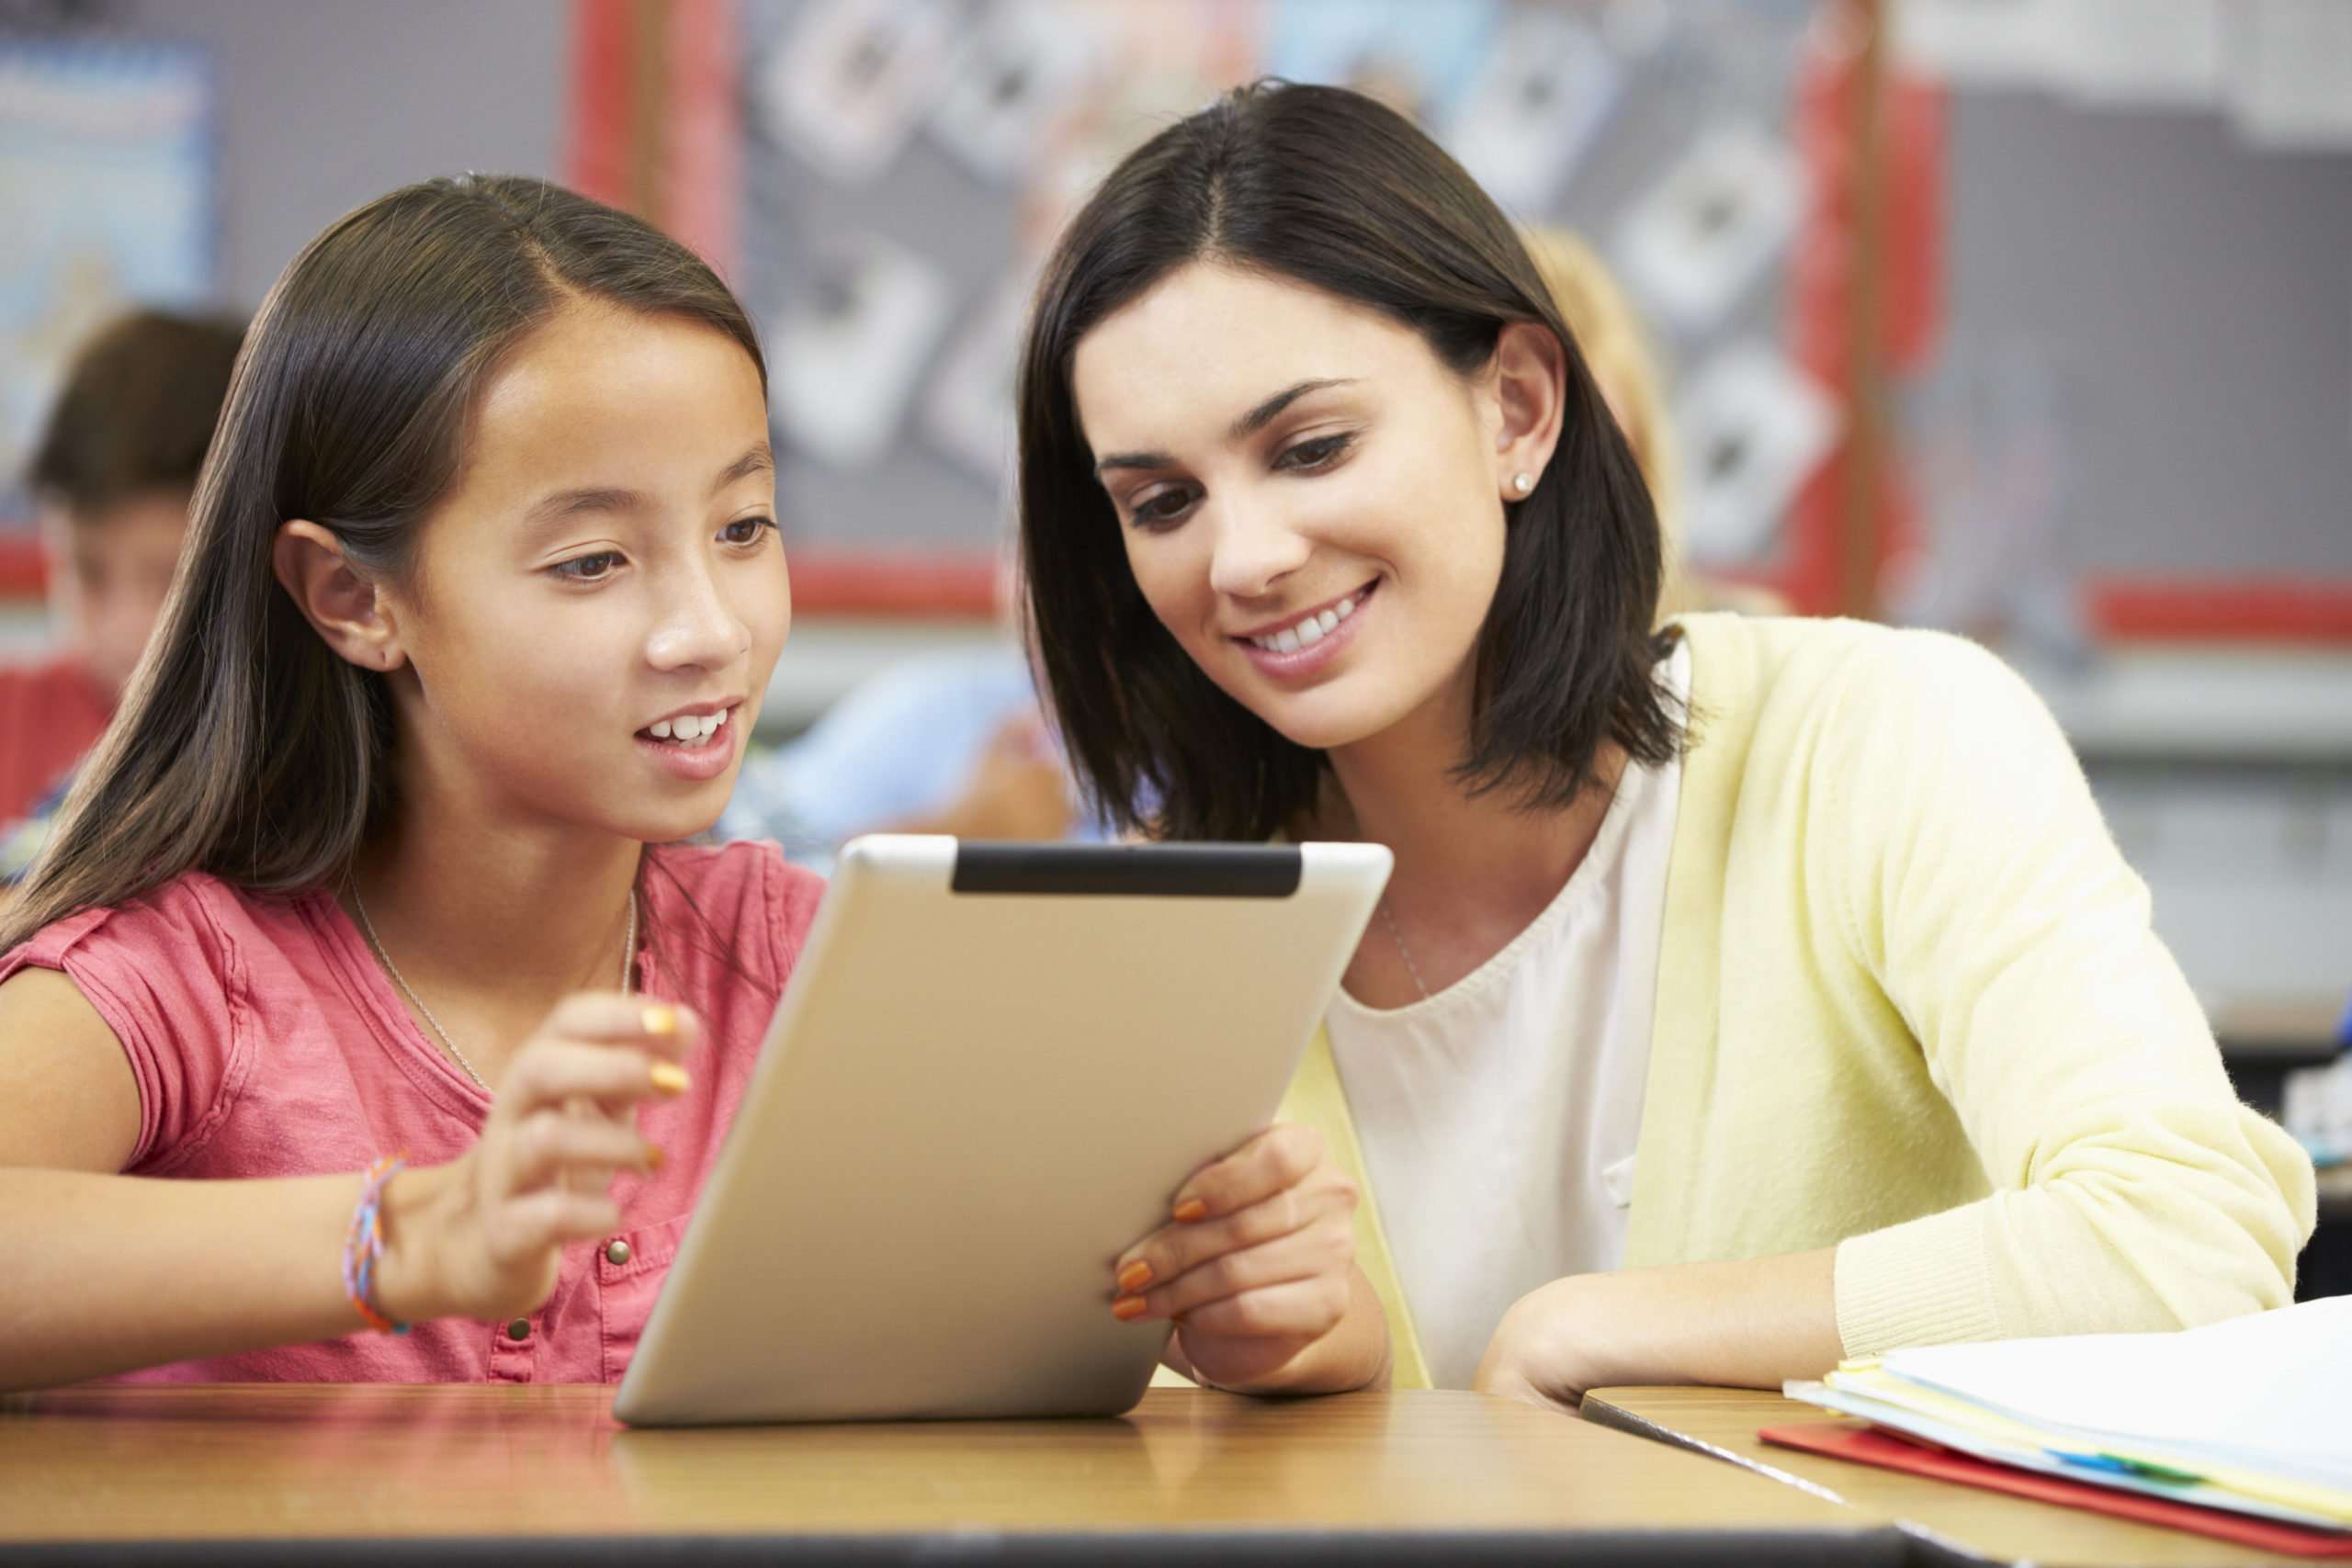 Building Better Connections with Students